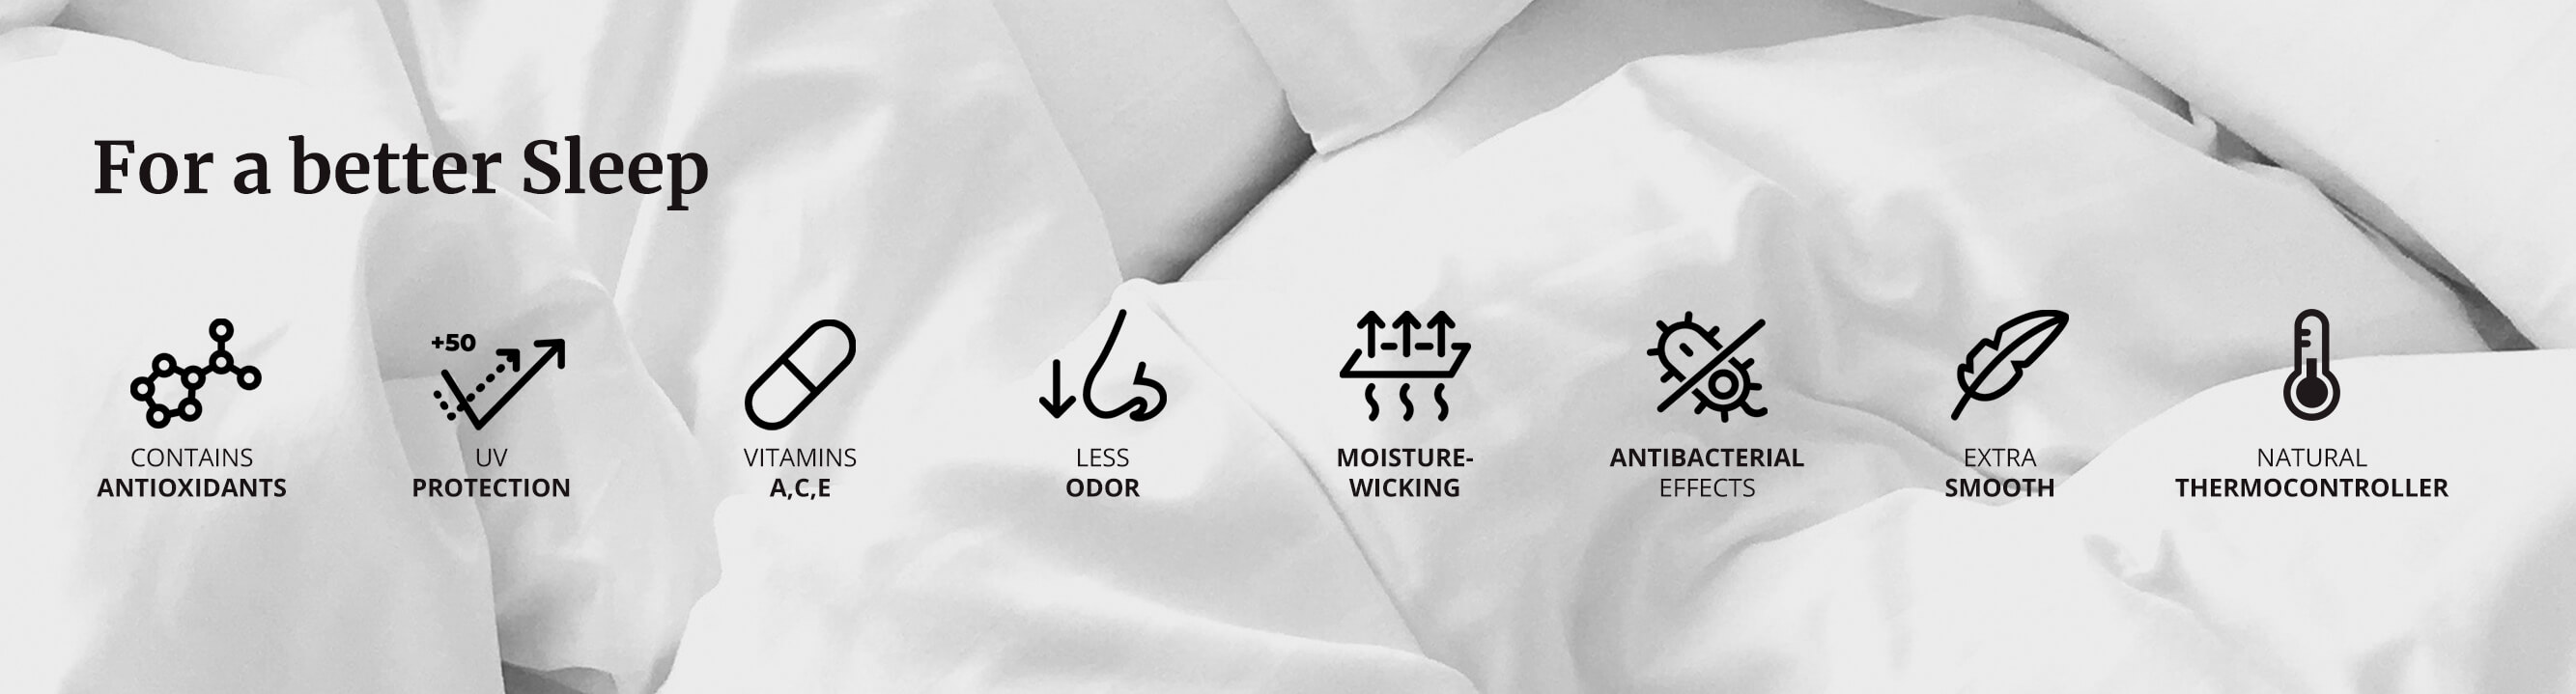 Marialma's bedding benefits in icons